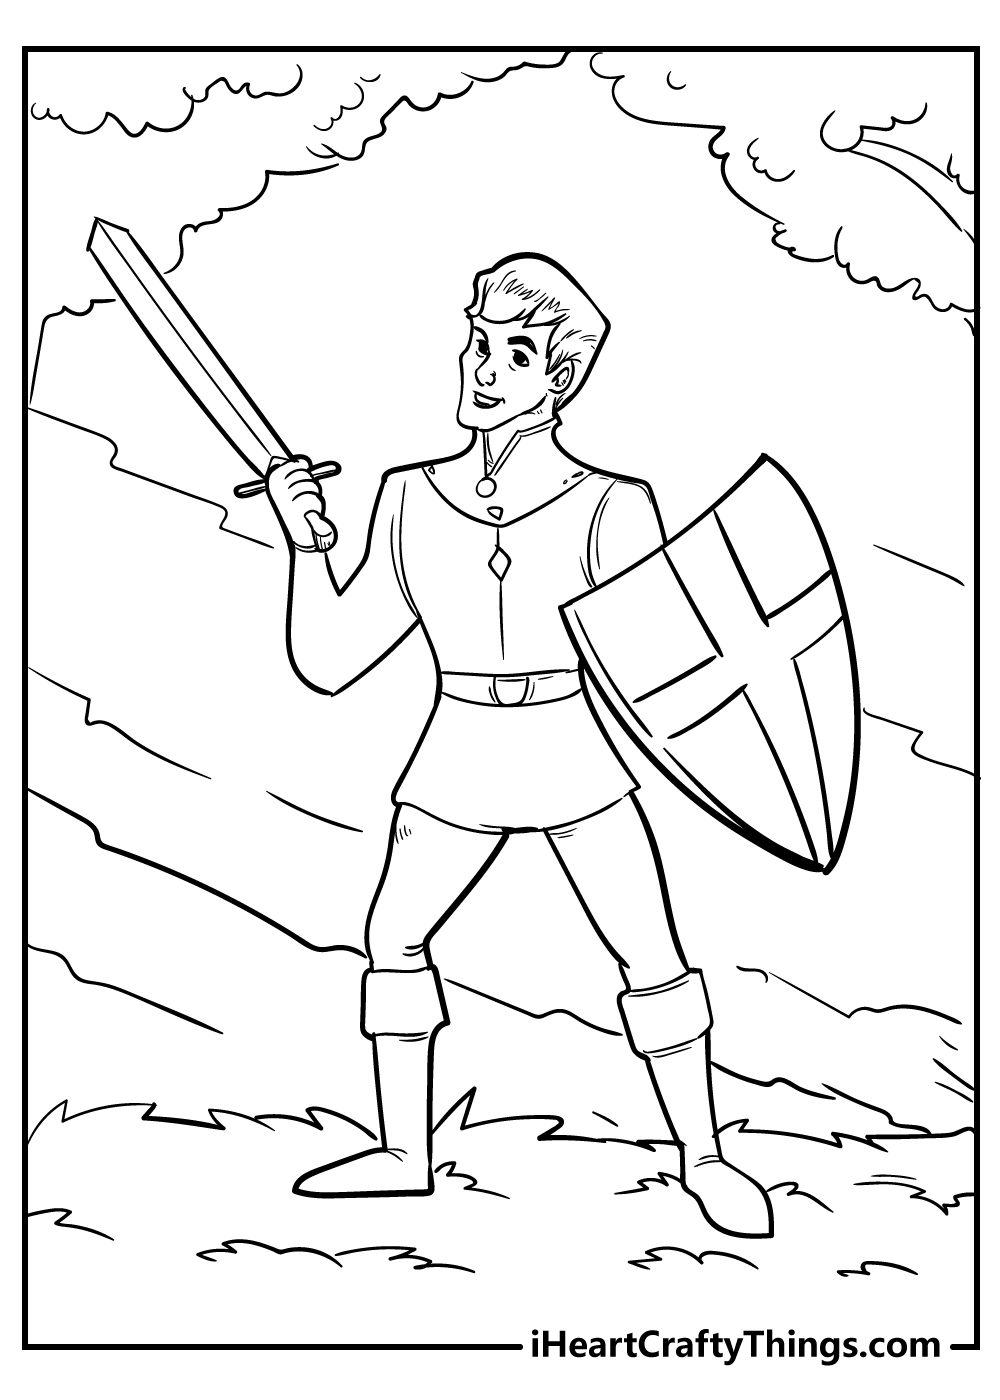 knight coloring pages for boys free download